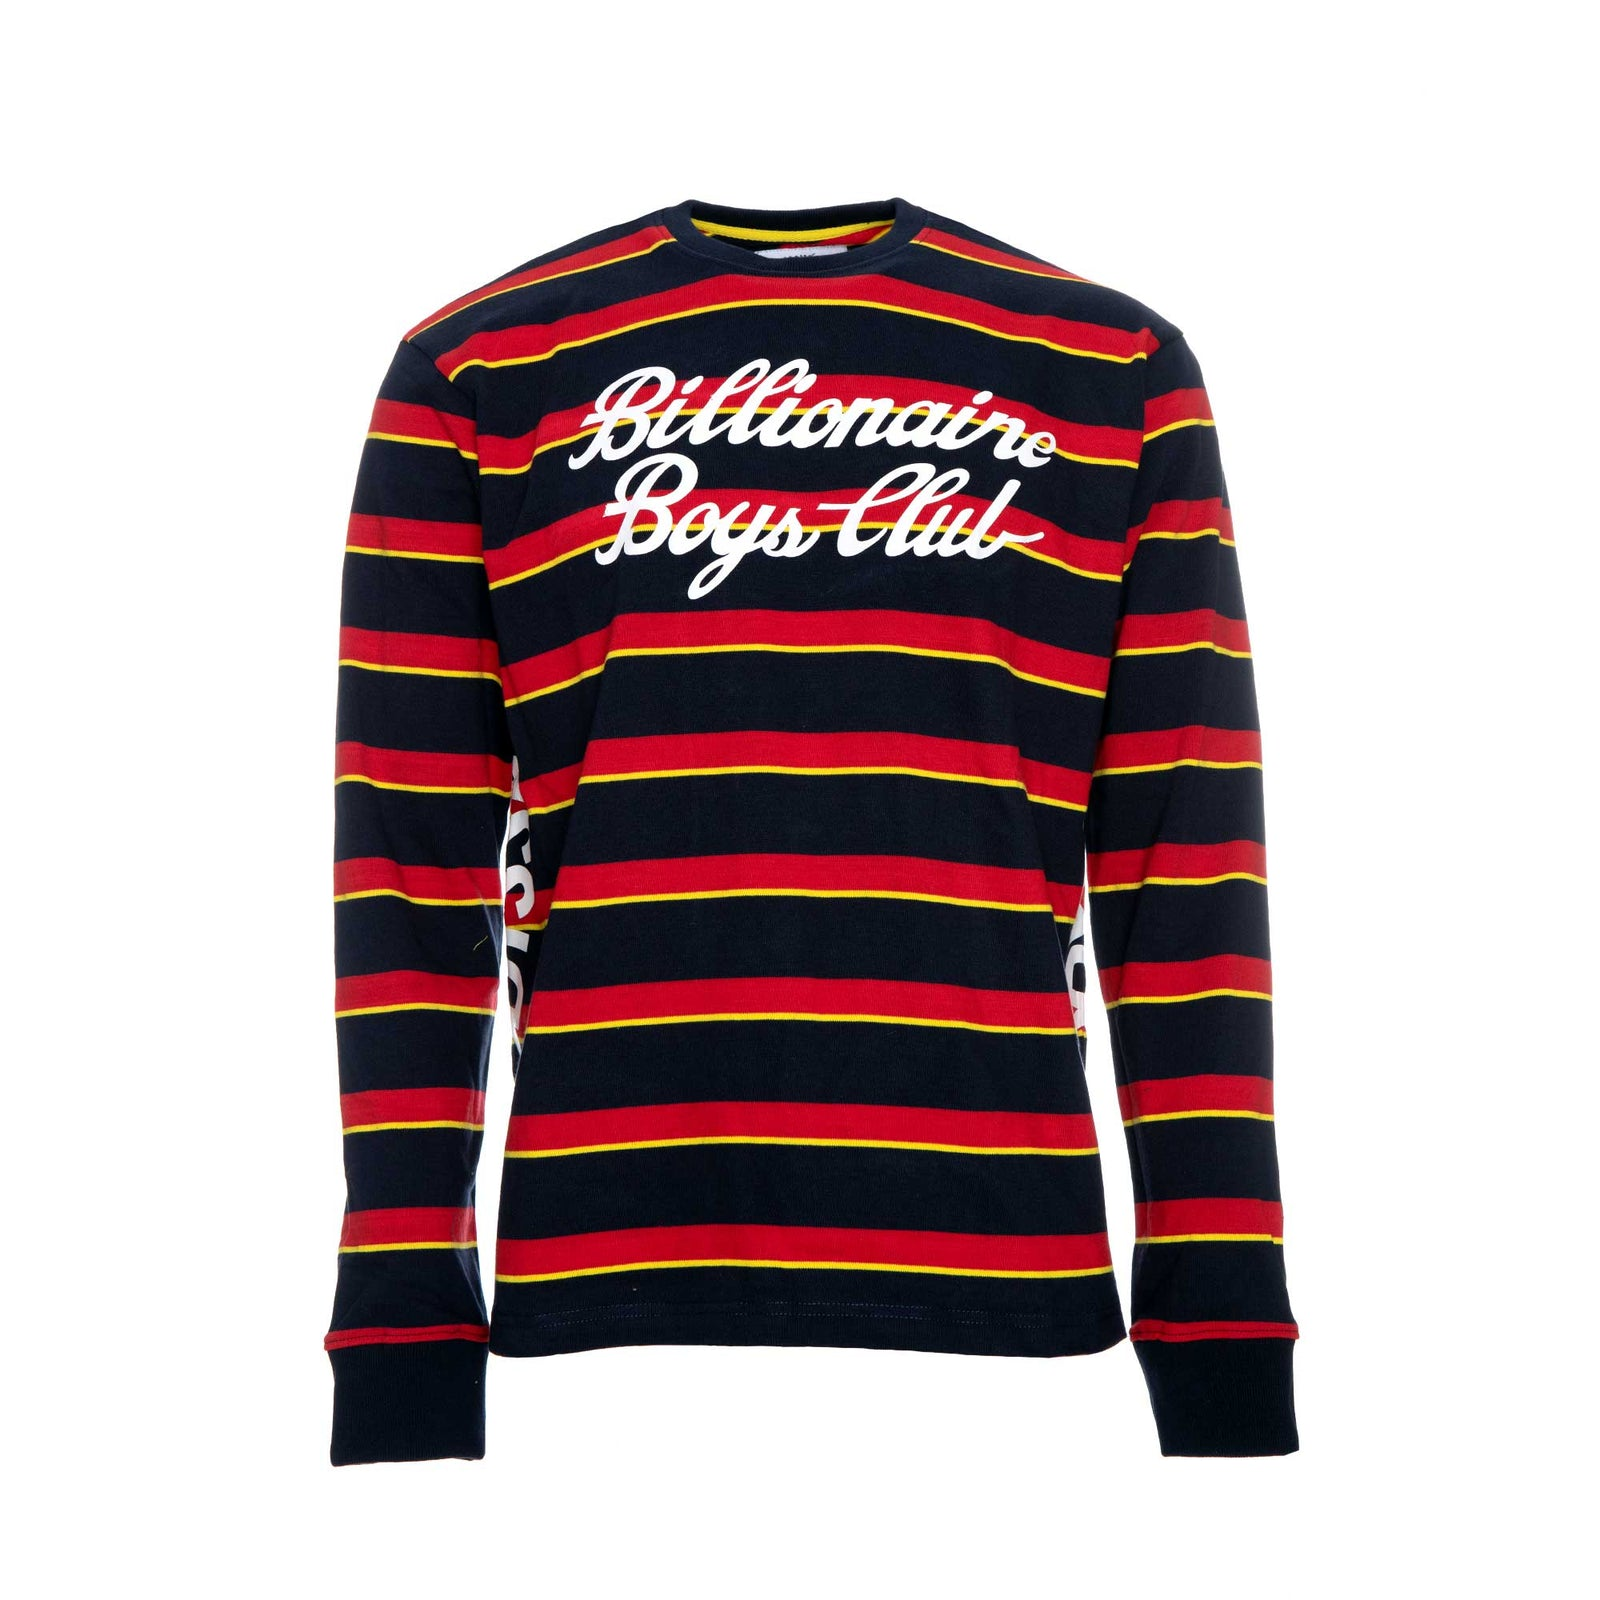 Billionaire Boys Club and Ice Cream Men's Sprinter LS Knit